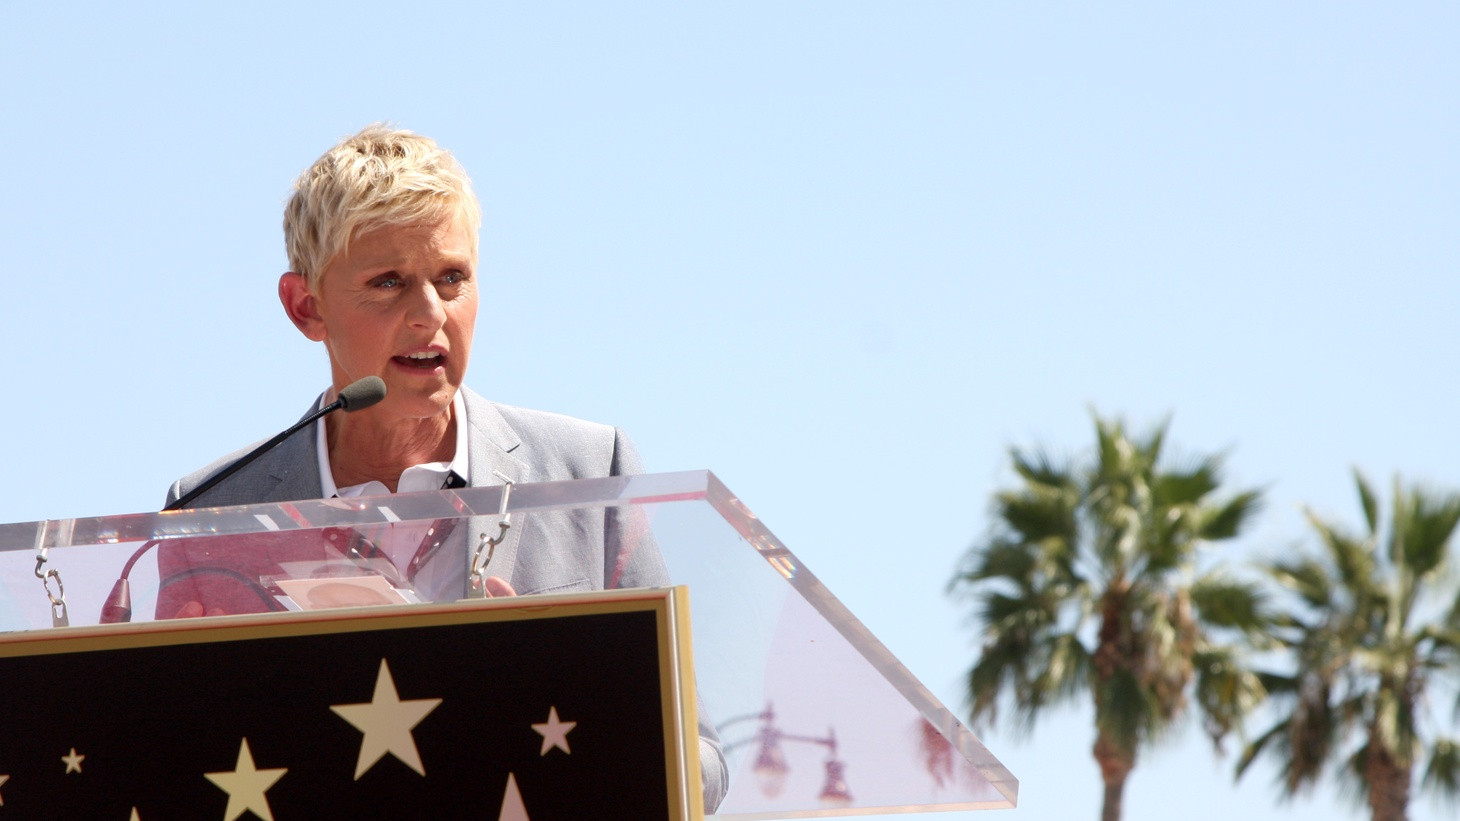 Ellen DeGeneres is ending her show, after Buzzfeed reported on allegations of the talk show host fostering a toxic workplace. That reporting led to a massive ratings dropoff.